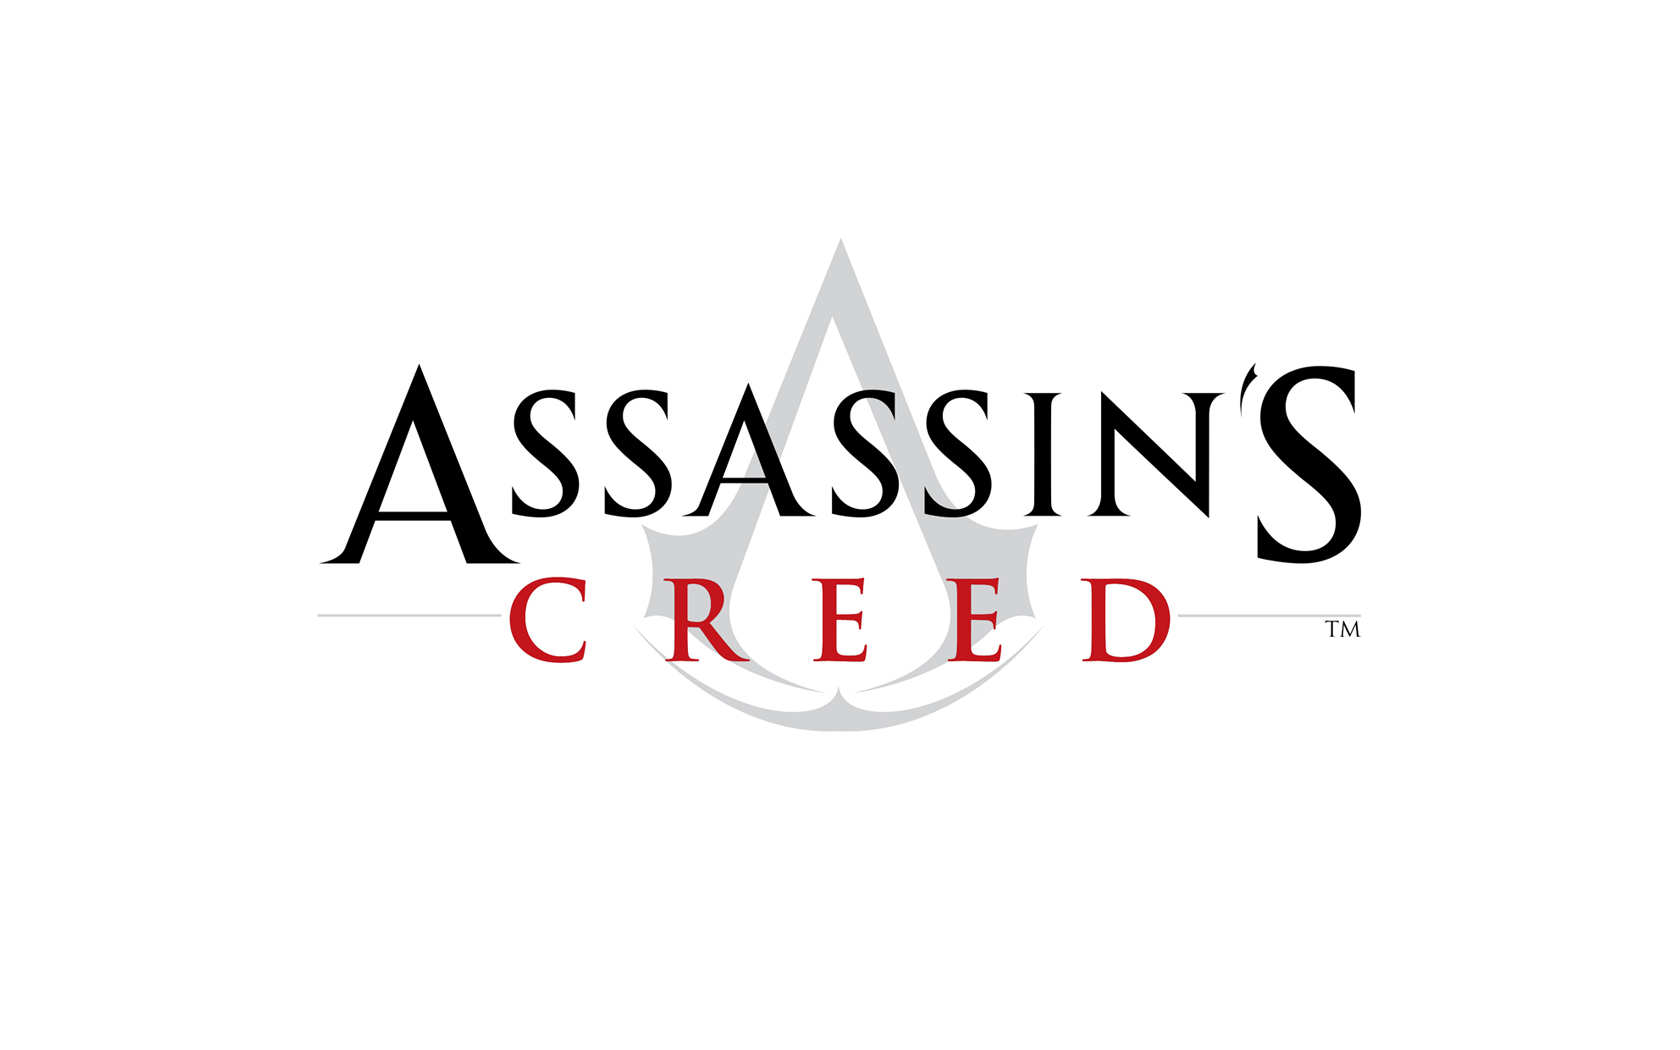 Amazing Wallpaper Horse Assassin'S Creed - tumblr_static_5or0bvzqj78cco8skcgogkssk  Perfect Image Reference_833020.jpg